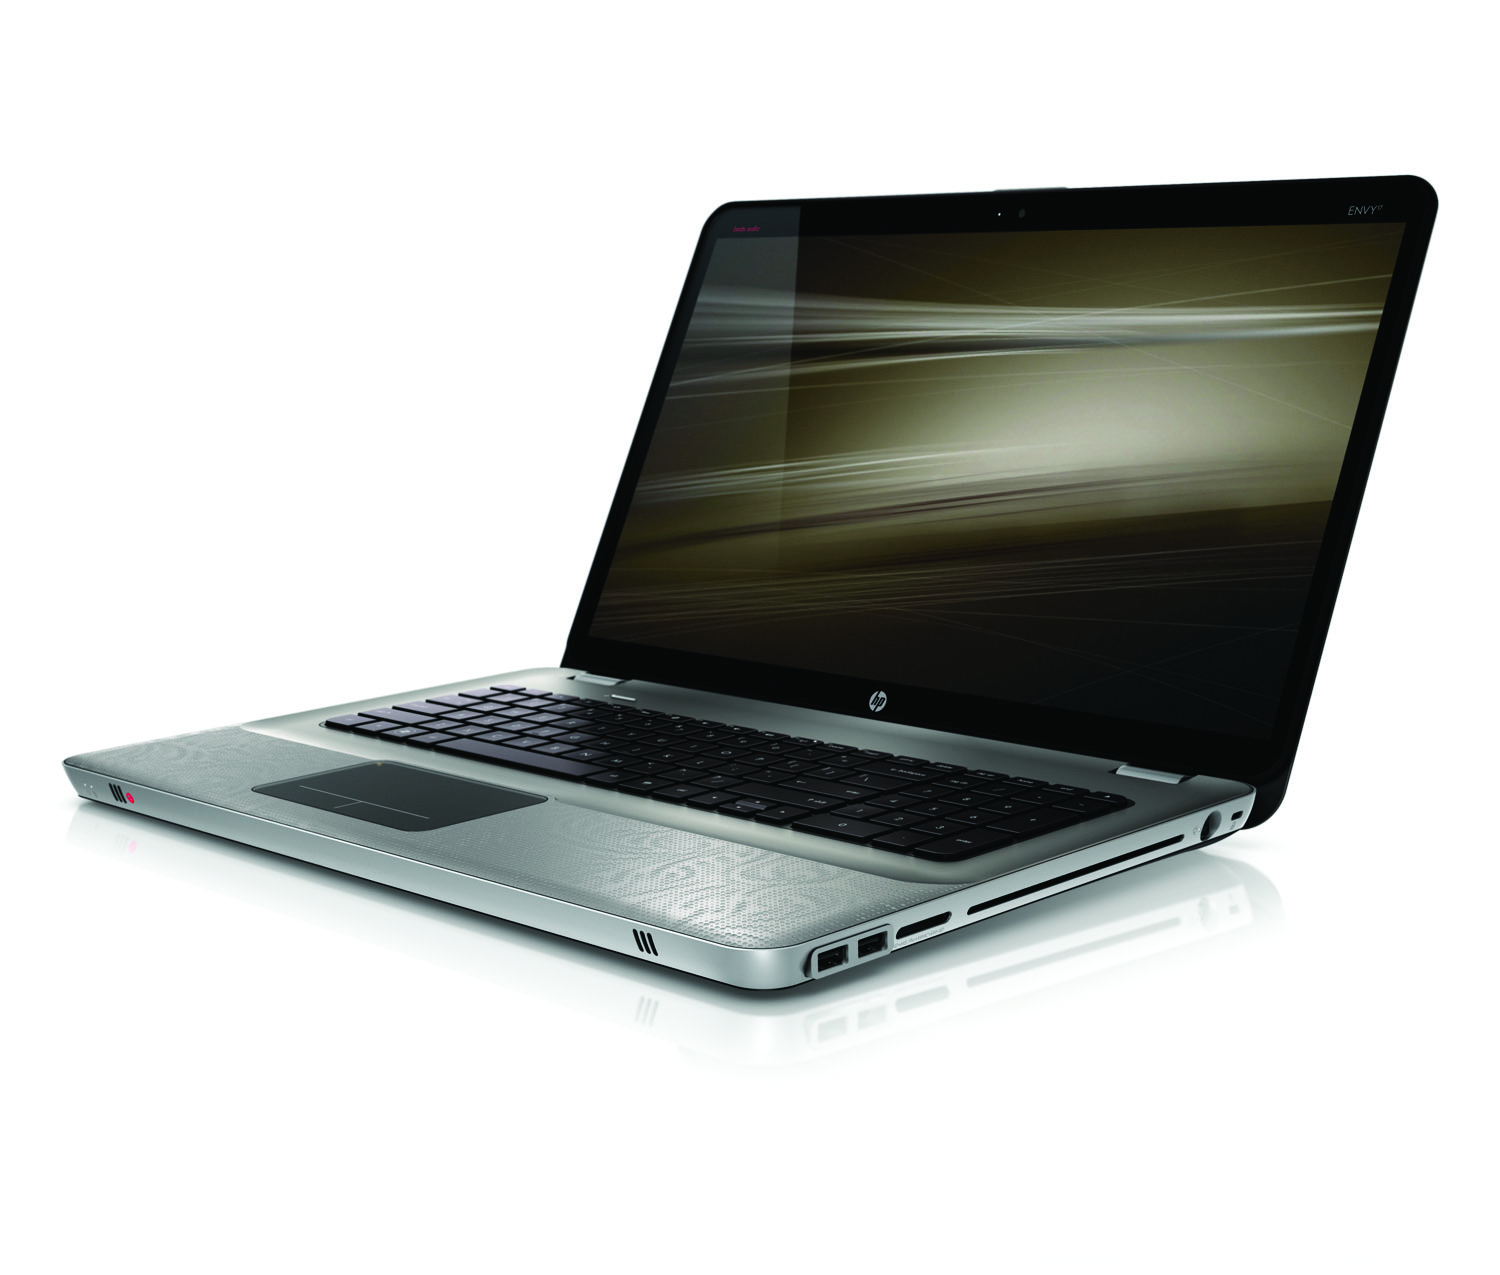 HP Envy 17, front left open on white